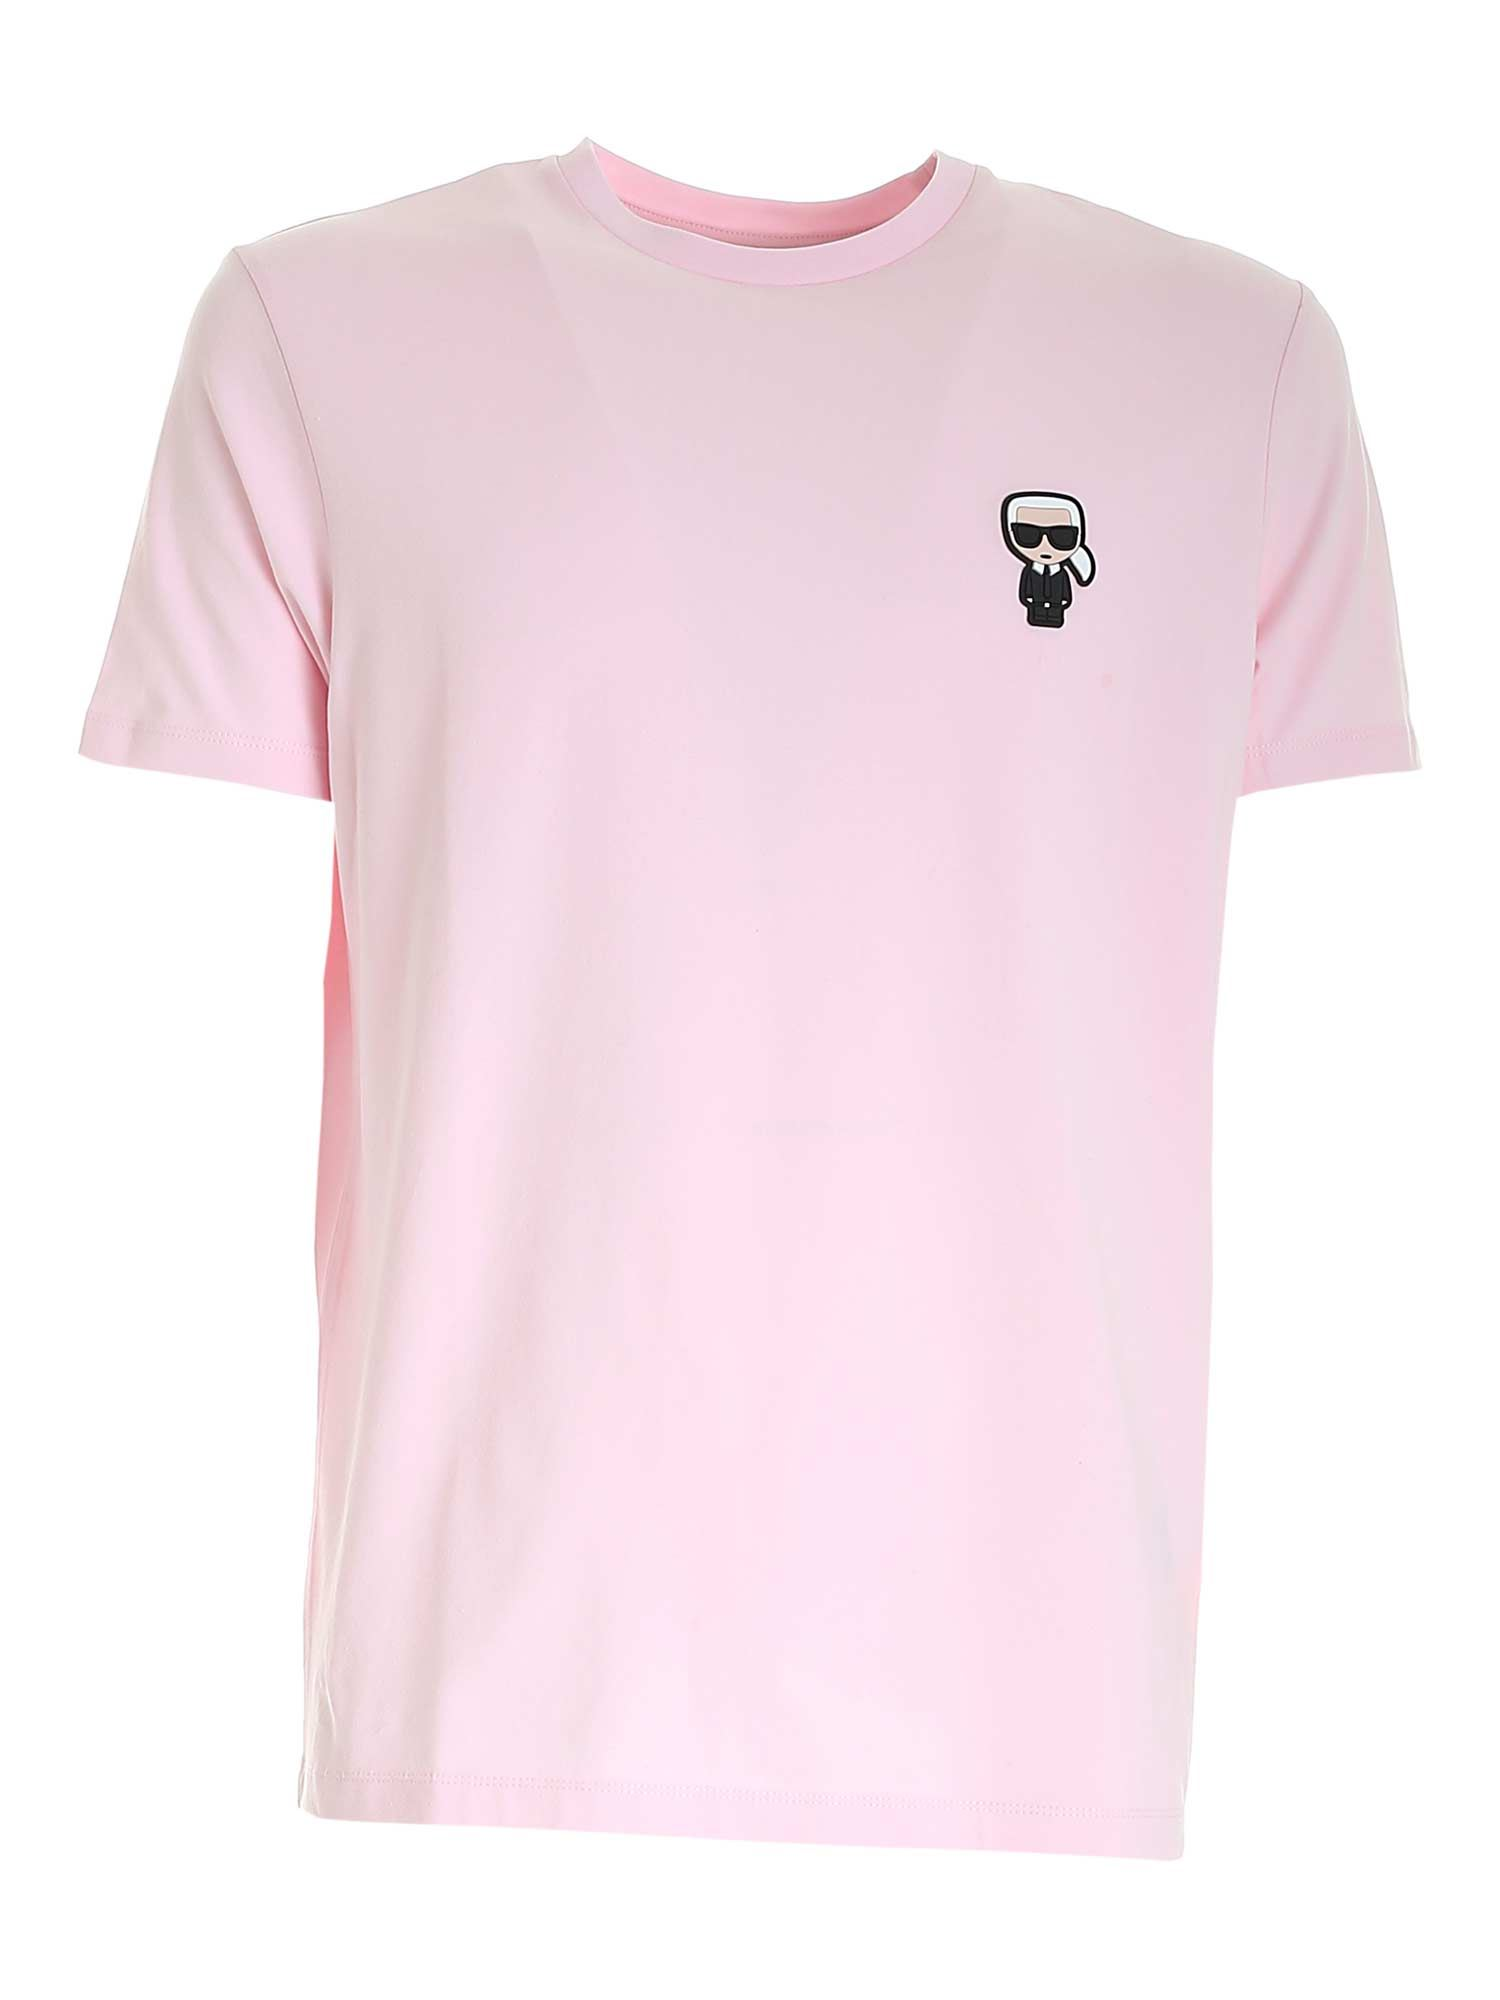 Karl Lagerfeld RUBBERIZED PATCH T-SHIRT IN PINK